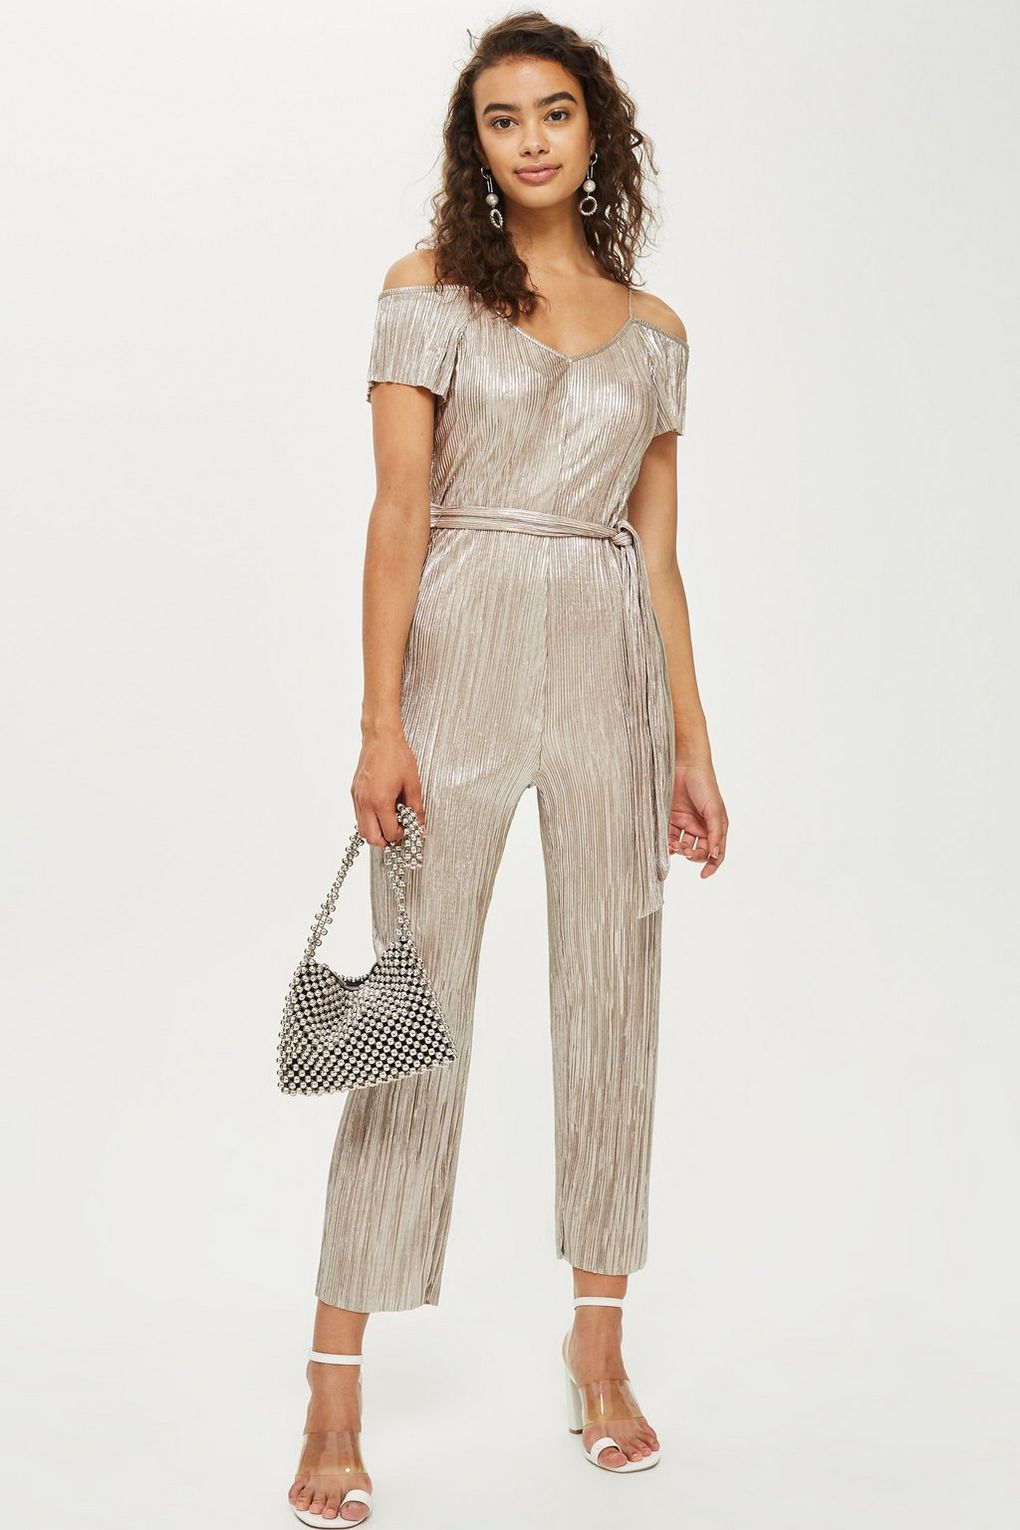 bd268bbde2f5 Metallic Plisse Jumpsuit - Topshop USA  fashion  trends  fashionweek   metallic